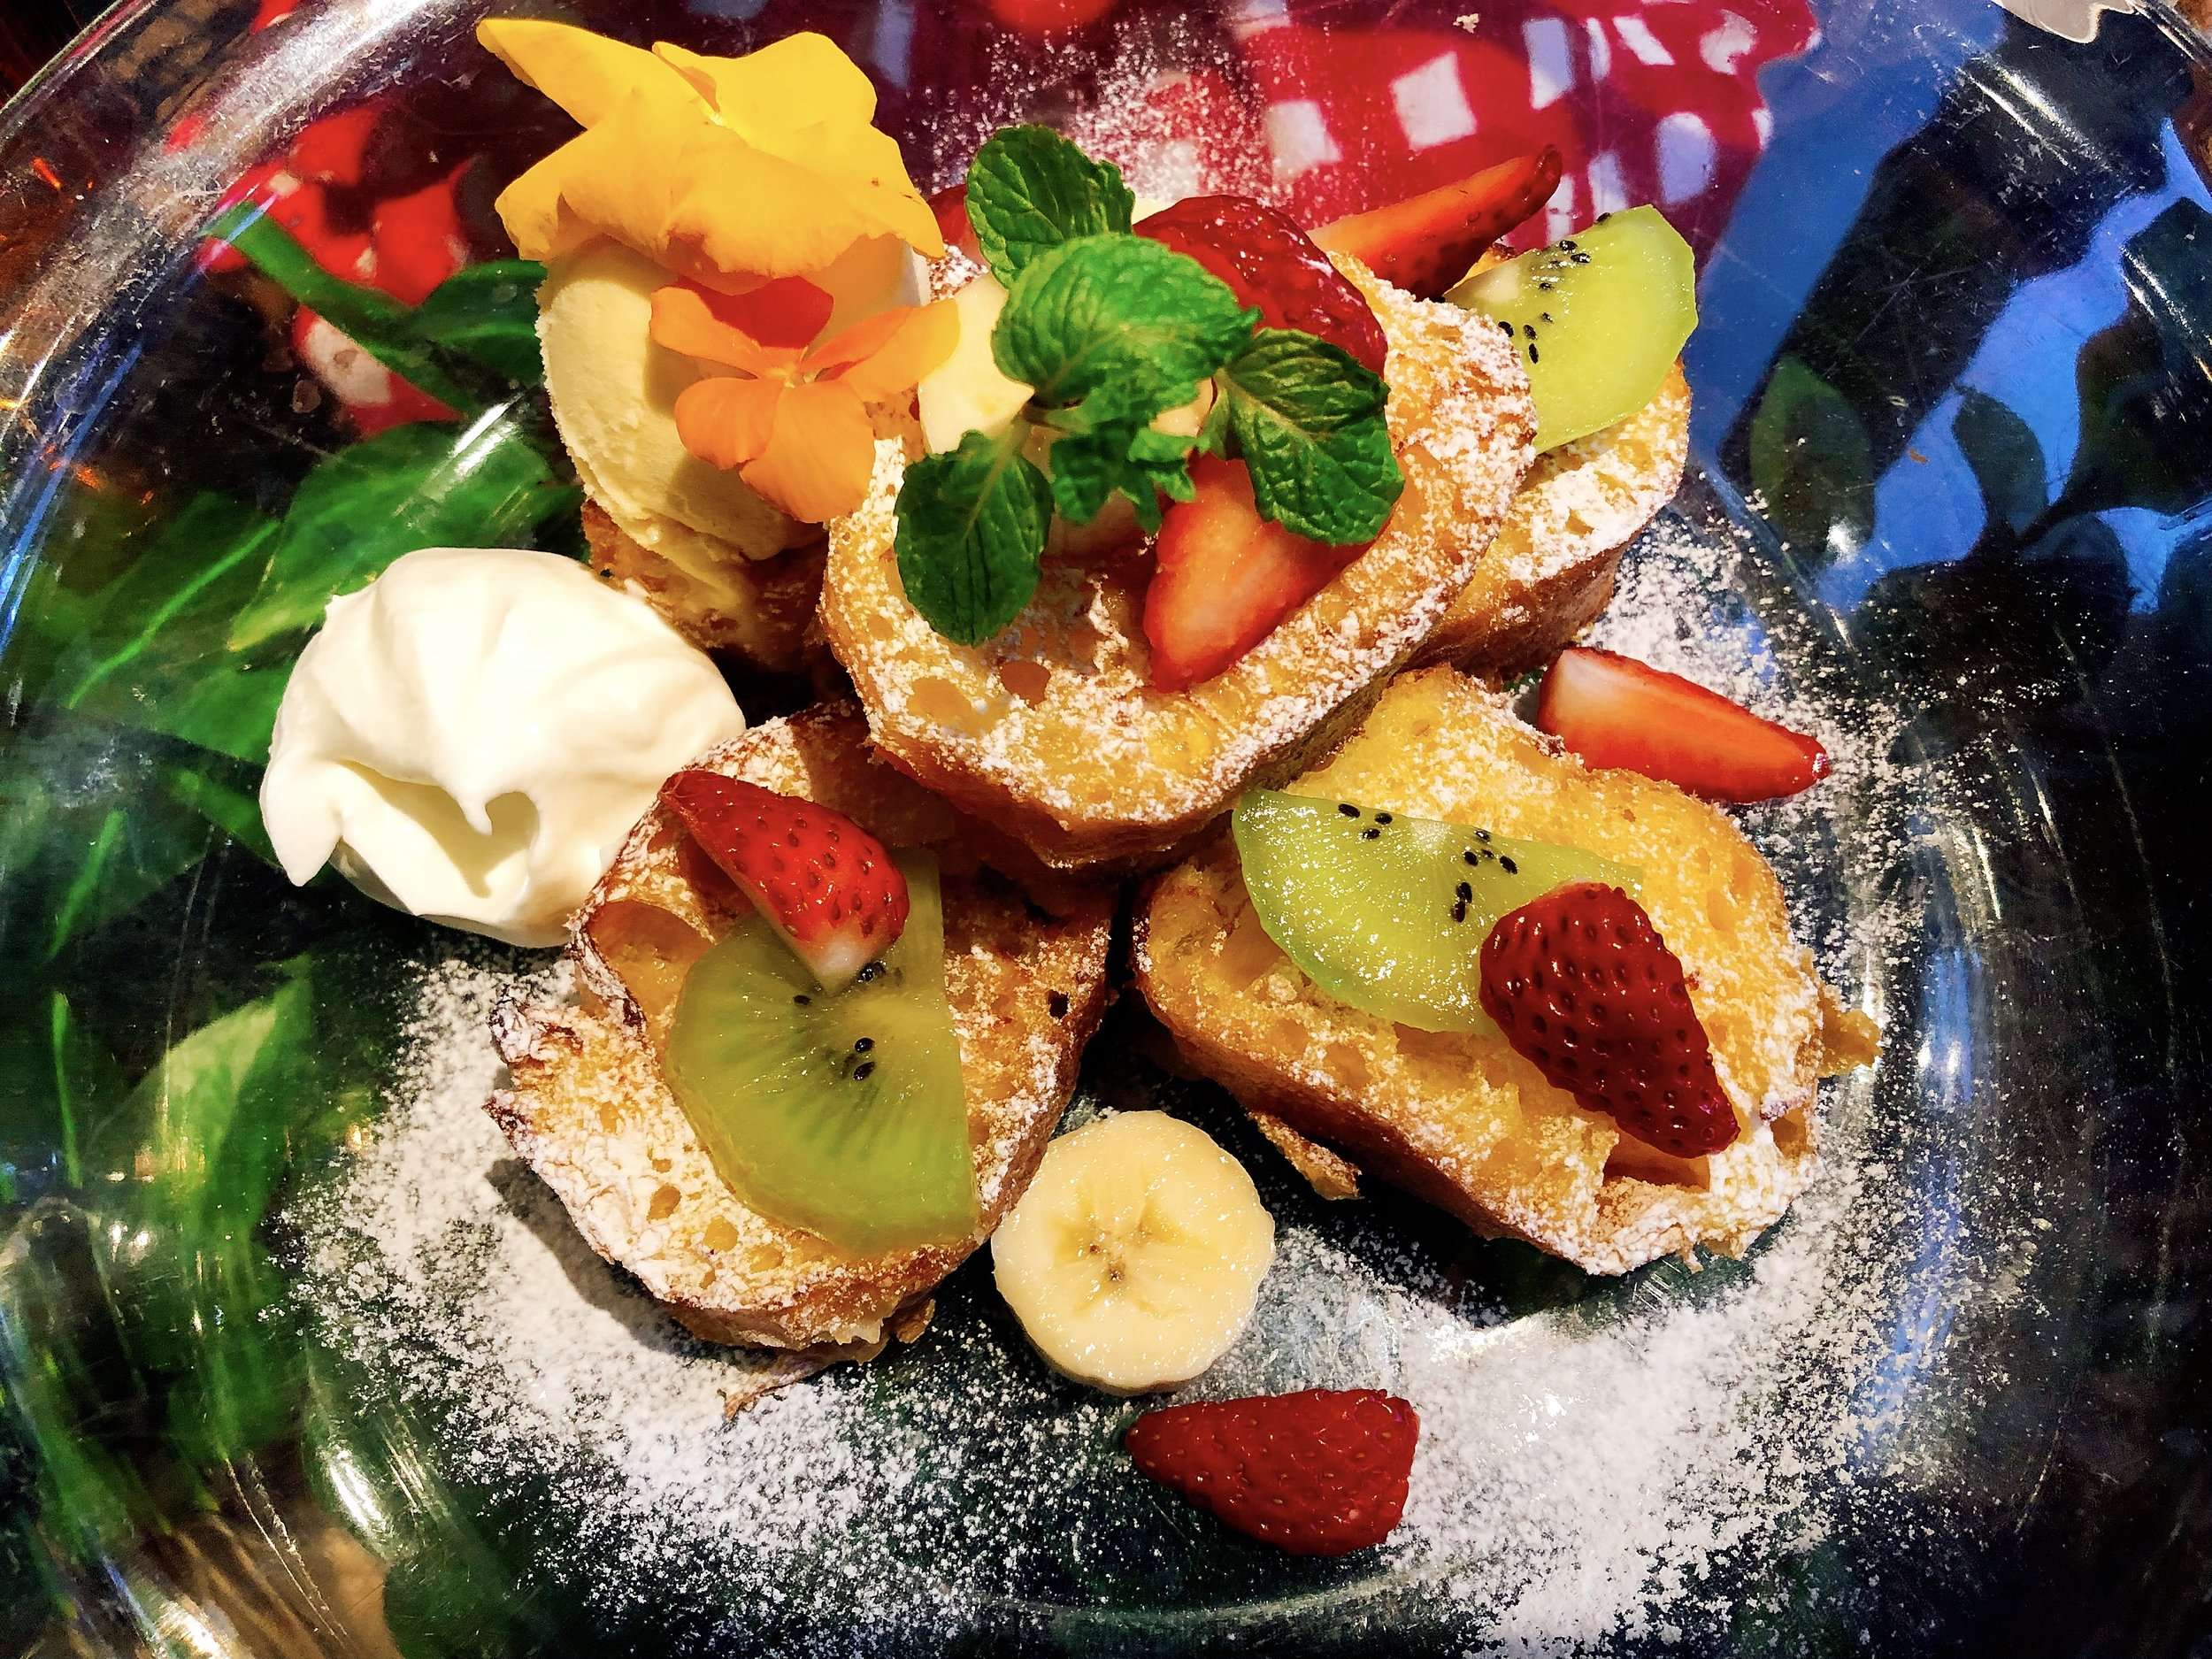 Seasonal Flower French Toast Served With Ice Cream And A Dollup Of Whipped Cream